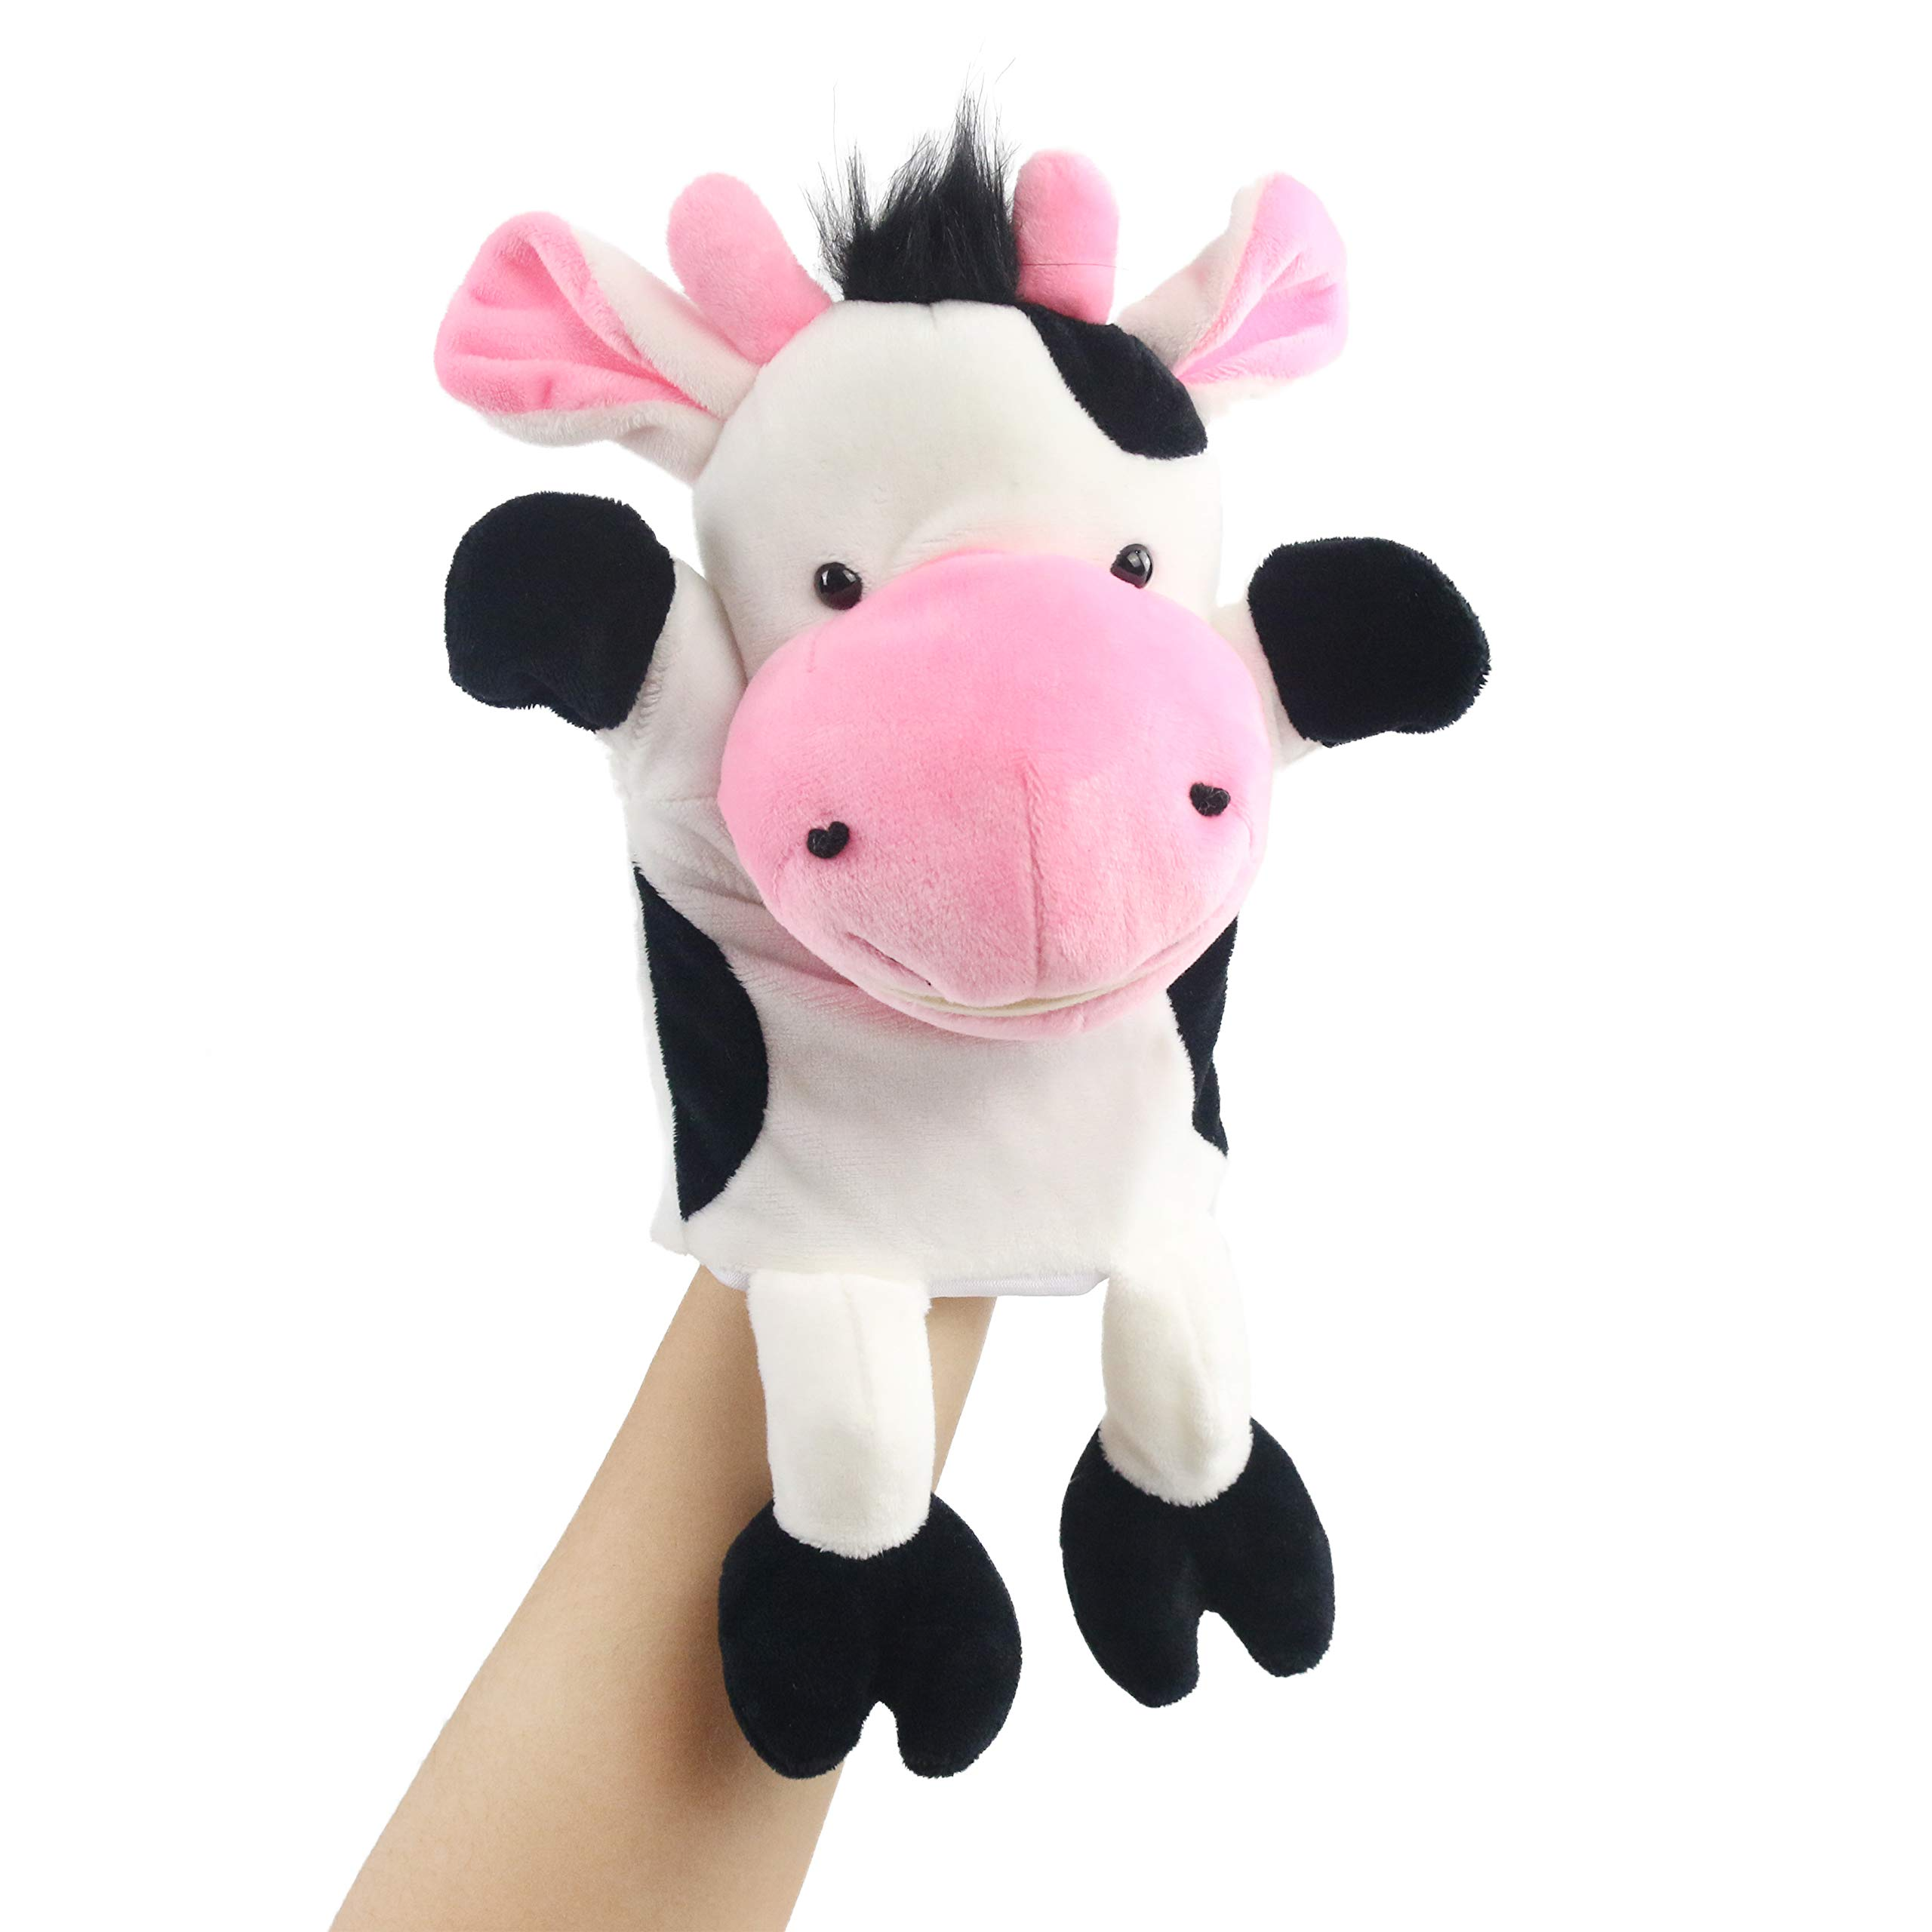 Houwsbaby Plush Cow Hand Puppet with Open Movable Workable Mouth for Imaginative Play, Role Play, Animal Toy for Storytelling Teaching Puppet Theater, Gift for Kids Boys Girls, White, 14''